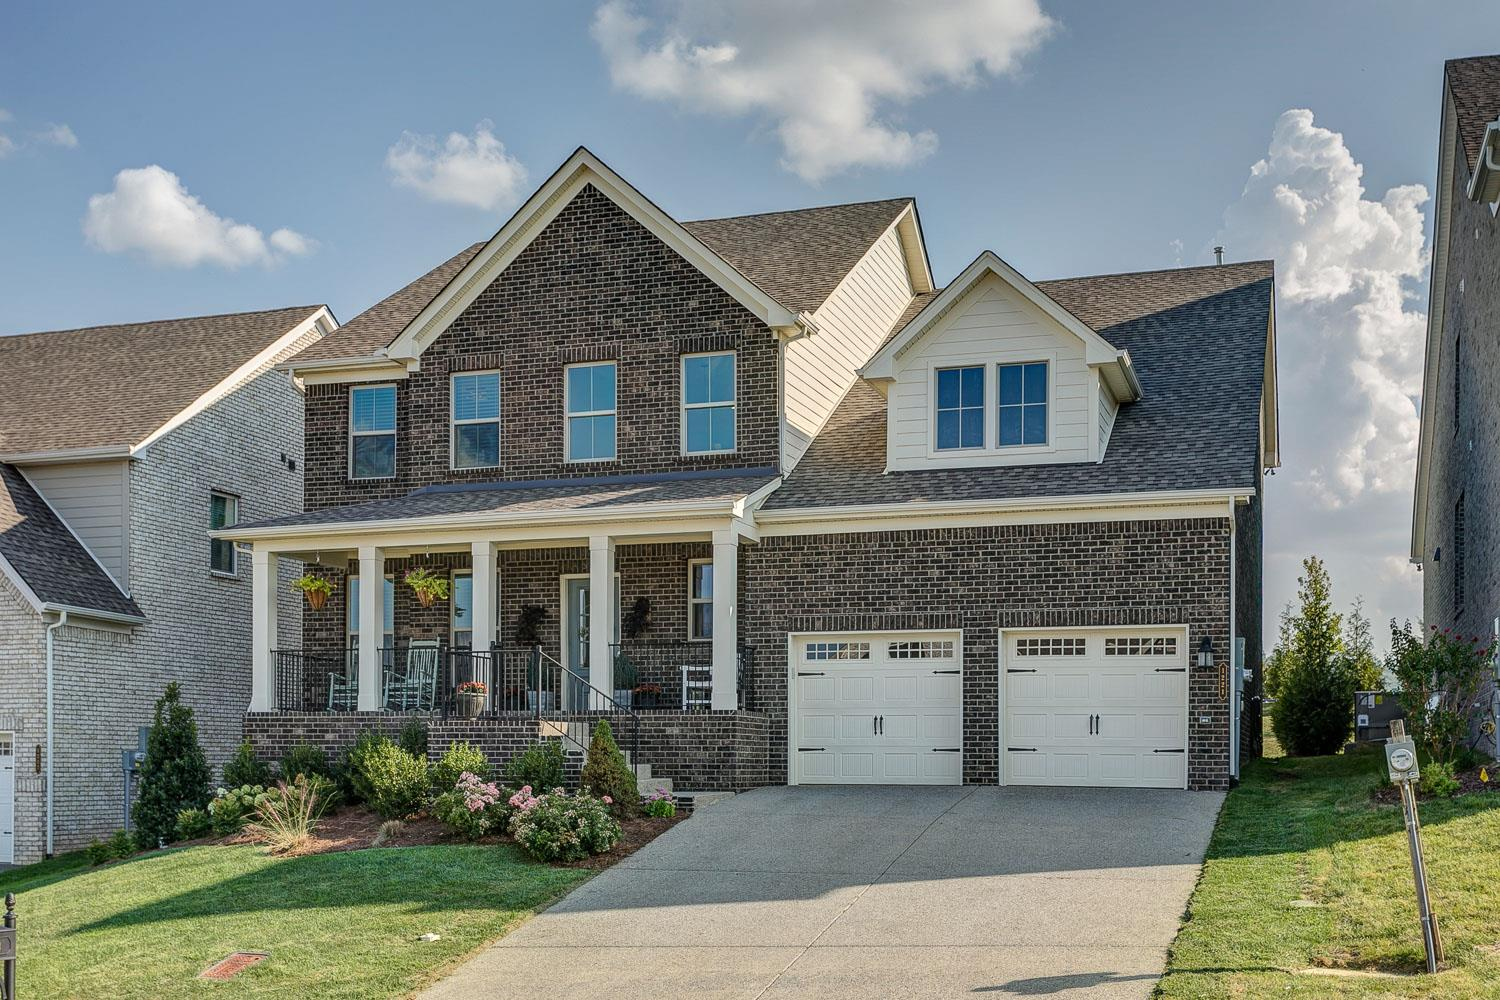 1221 Bradshaw Ln, Nolensville in Williamson County County, TN 37135 Home for Sale